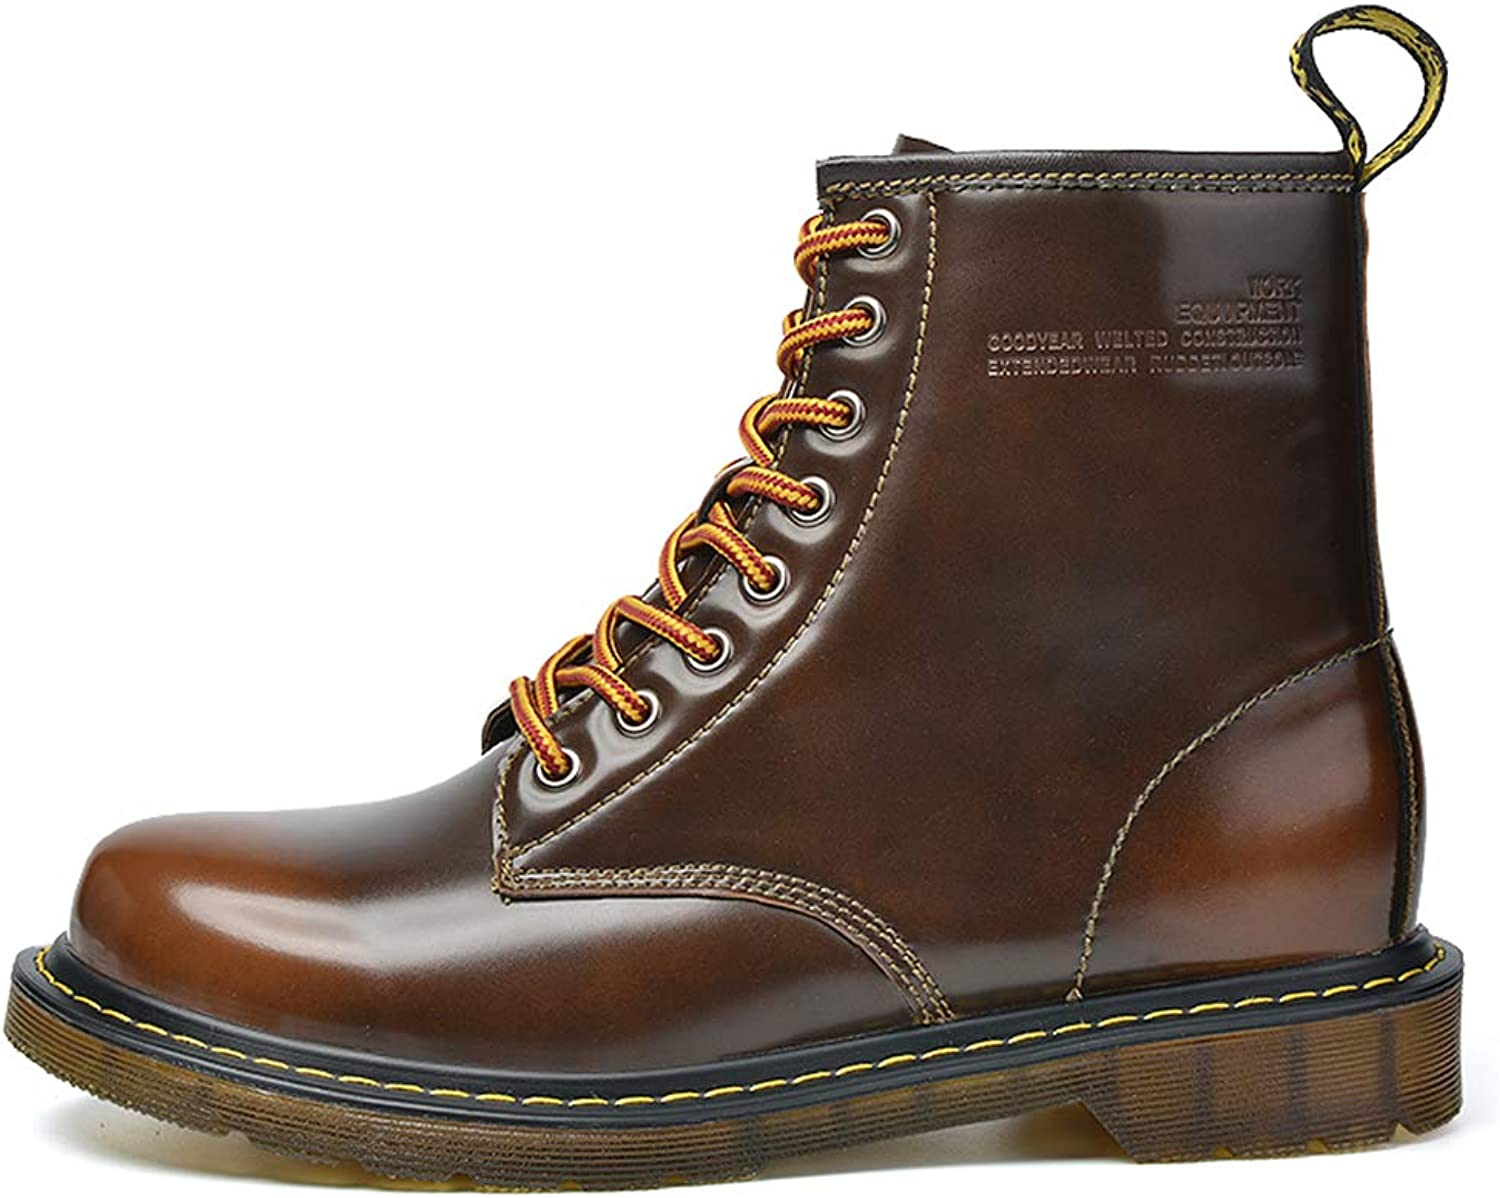 LEFT&RIGHT Mens Martin Boots Ankle Boots,Leather Autumn Winter Causal Outdoor Lace Up Motorcycle Boots Large Size